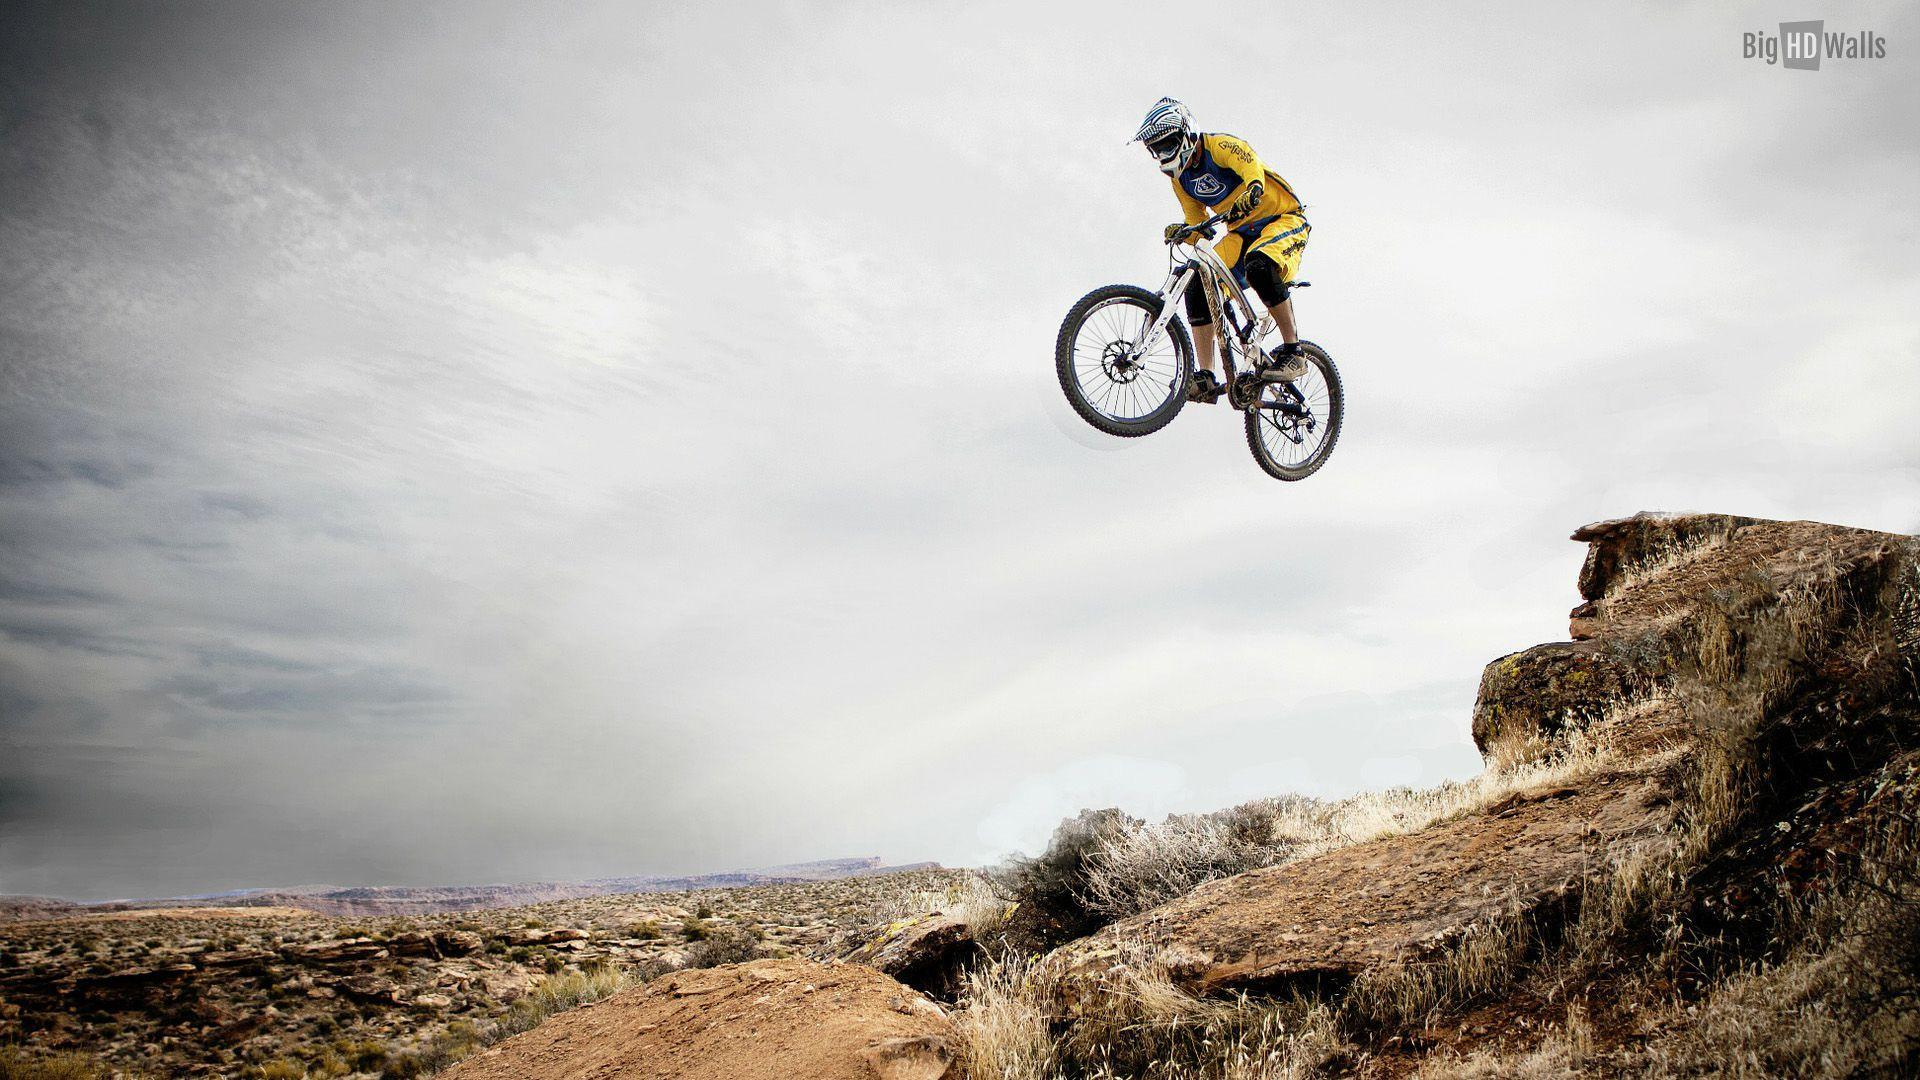 Downhill Mountain Bike 2017 Wallpapers Wallpaper Cave